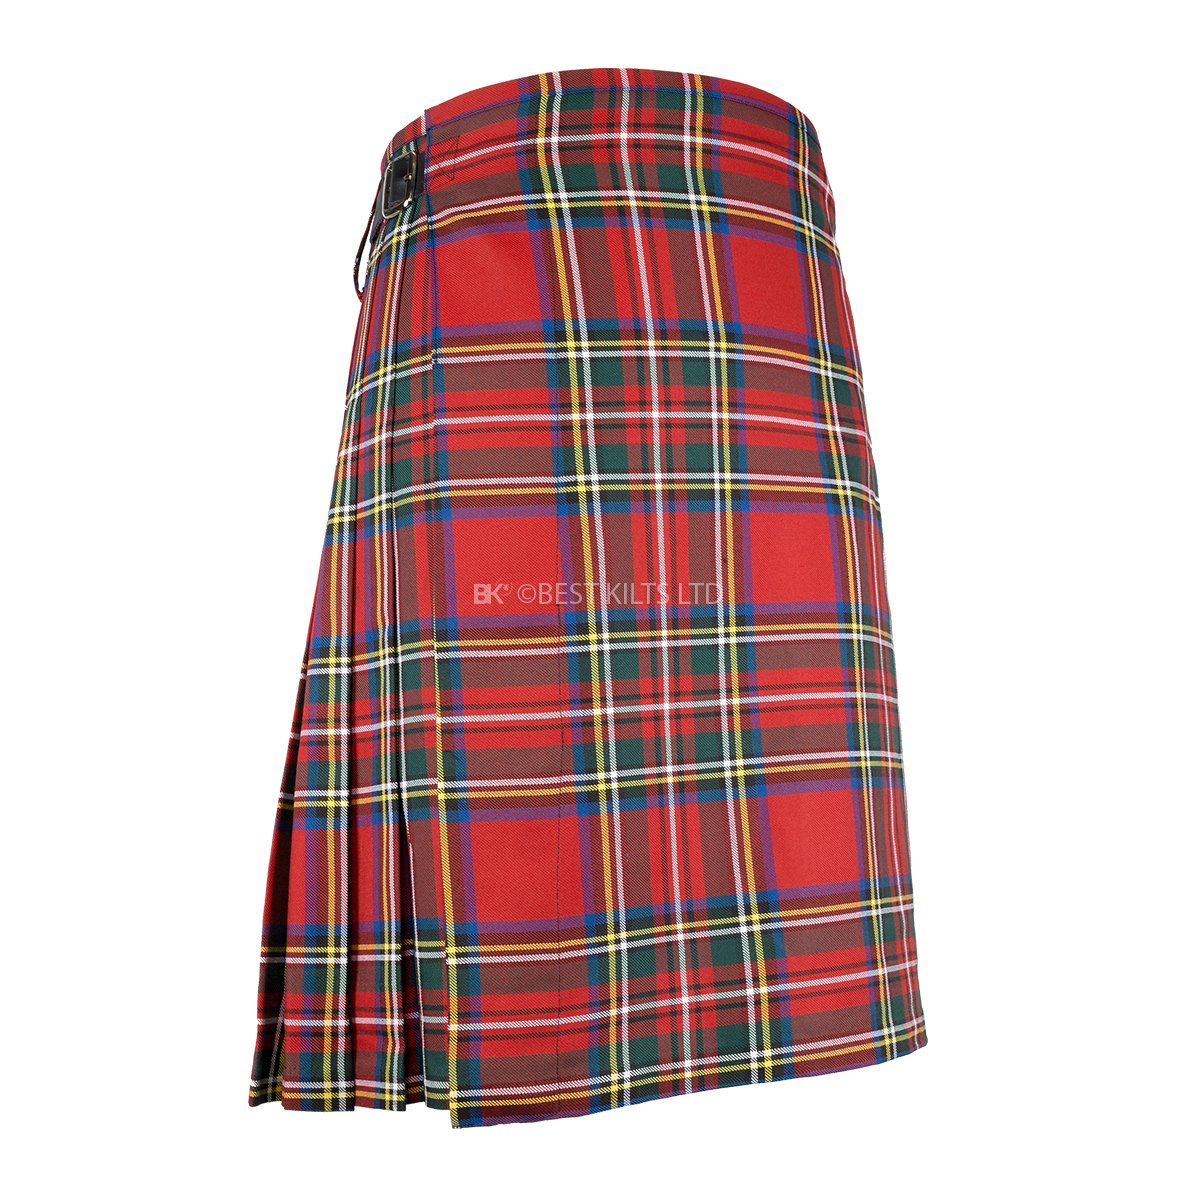 "Best Kilts Men's Scottish 5 Yard Party Kilt Royal Stewart 42""-44"" by Best Kilts (Image #1)"